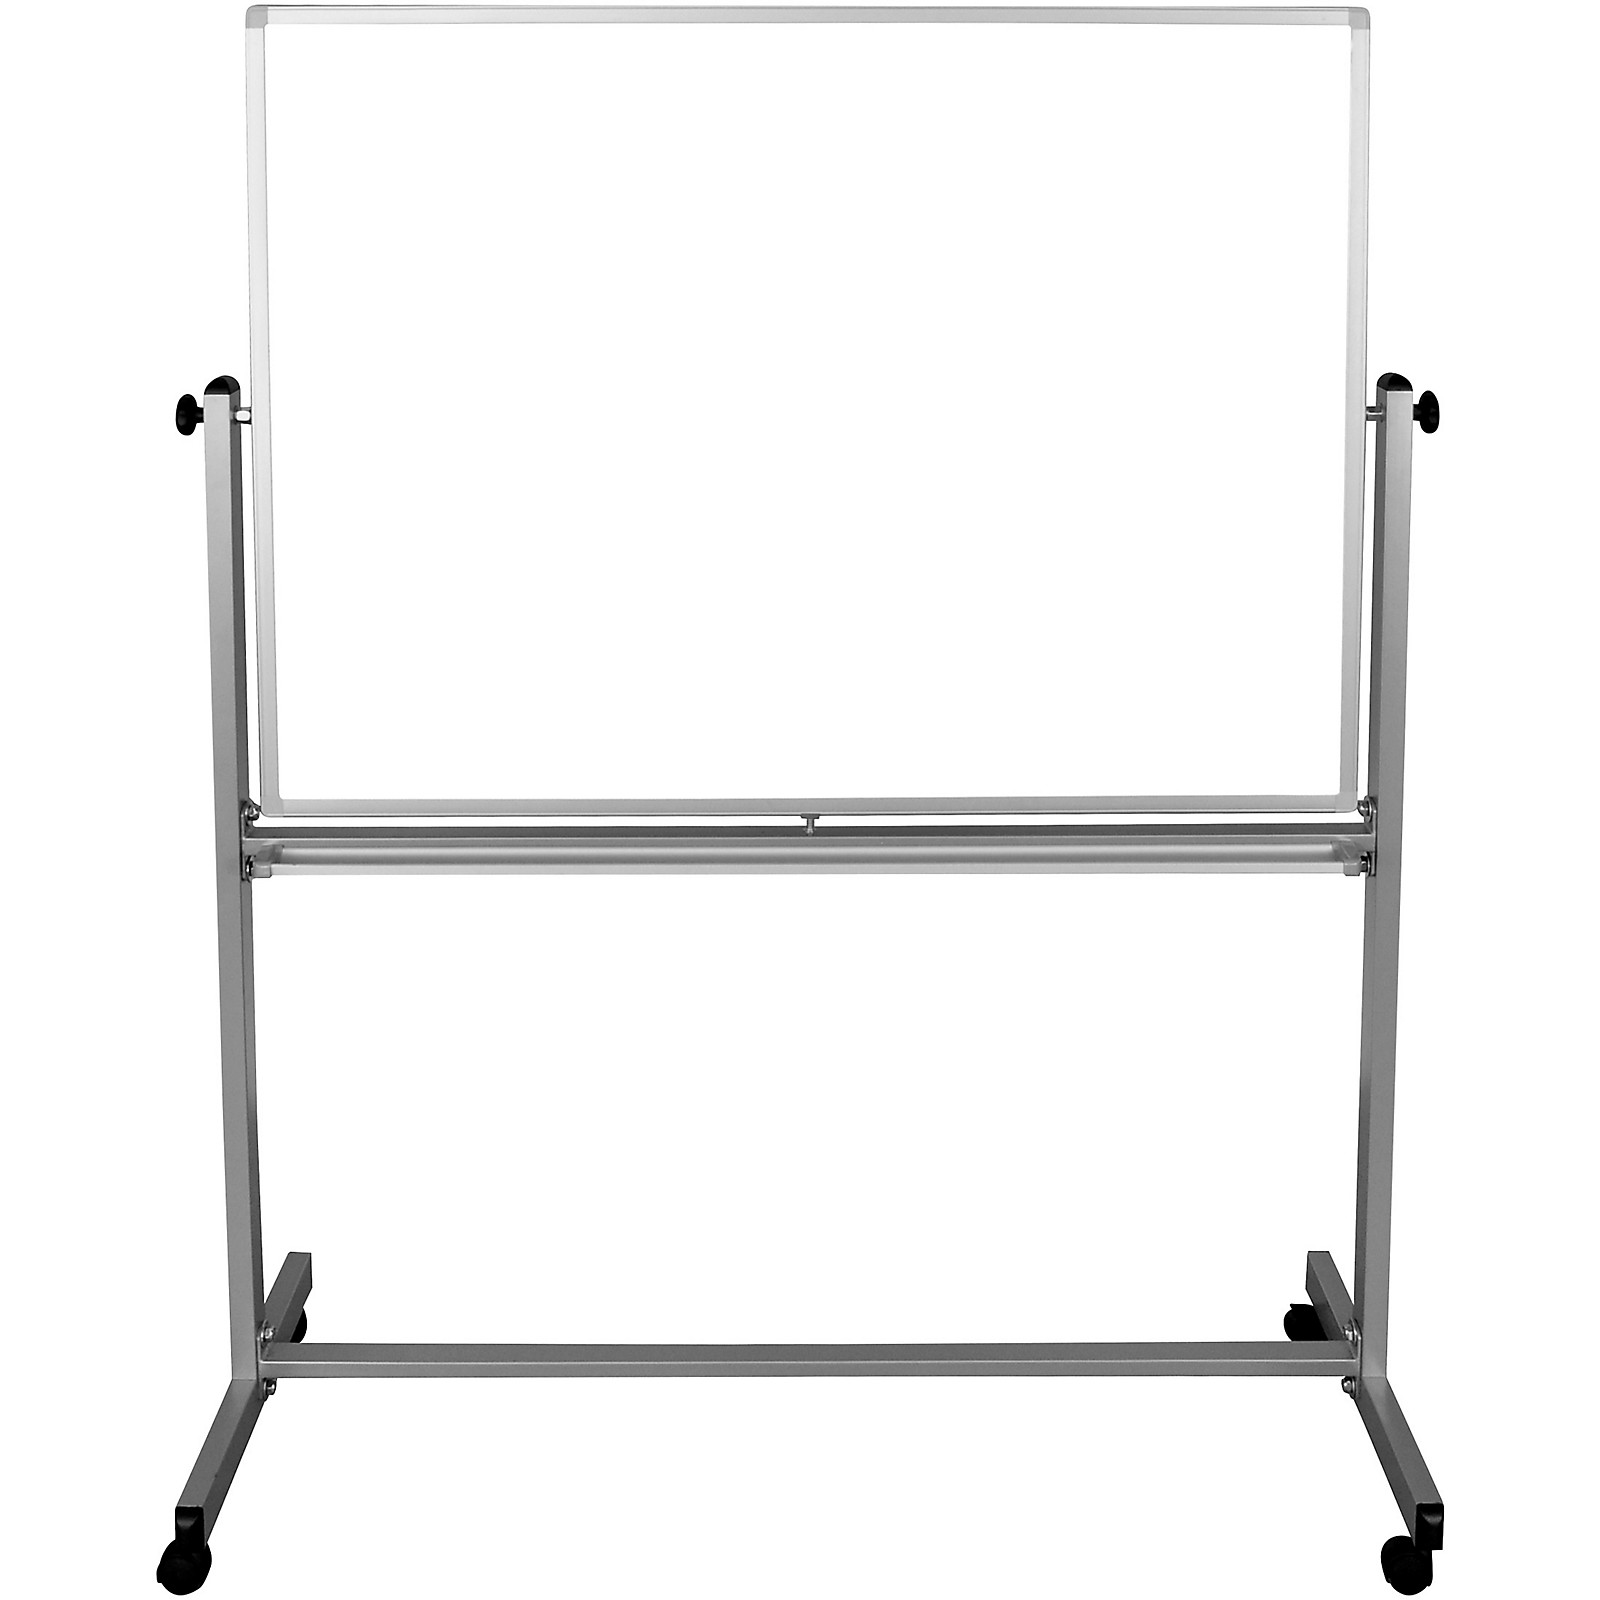 H. Wilson 48x36 Double Sided Mobile Whiteboard